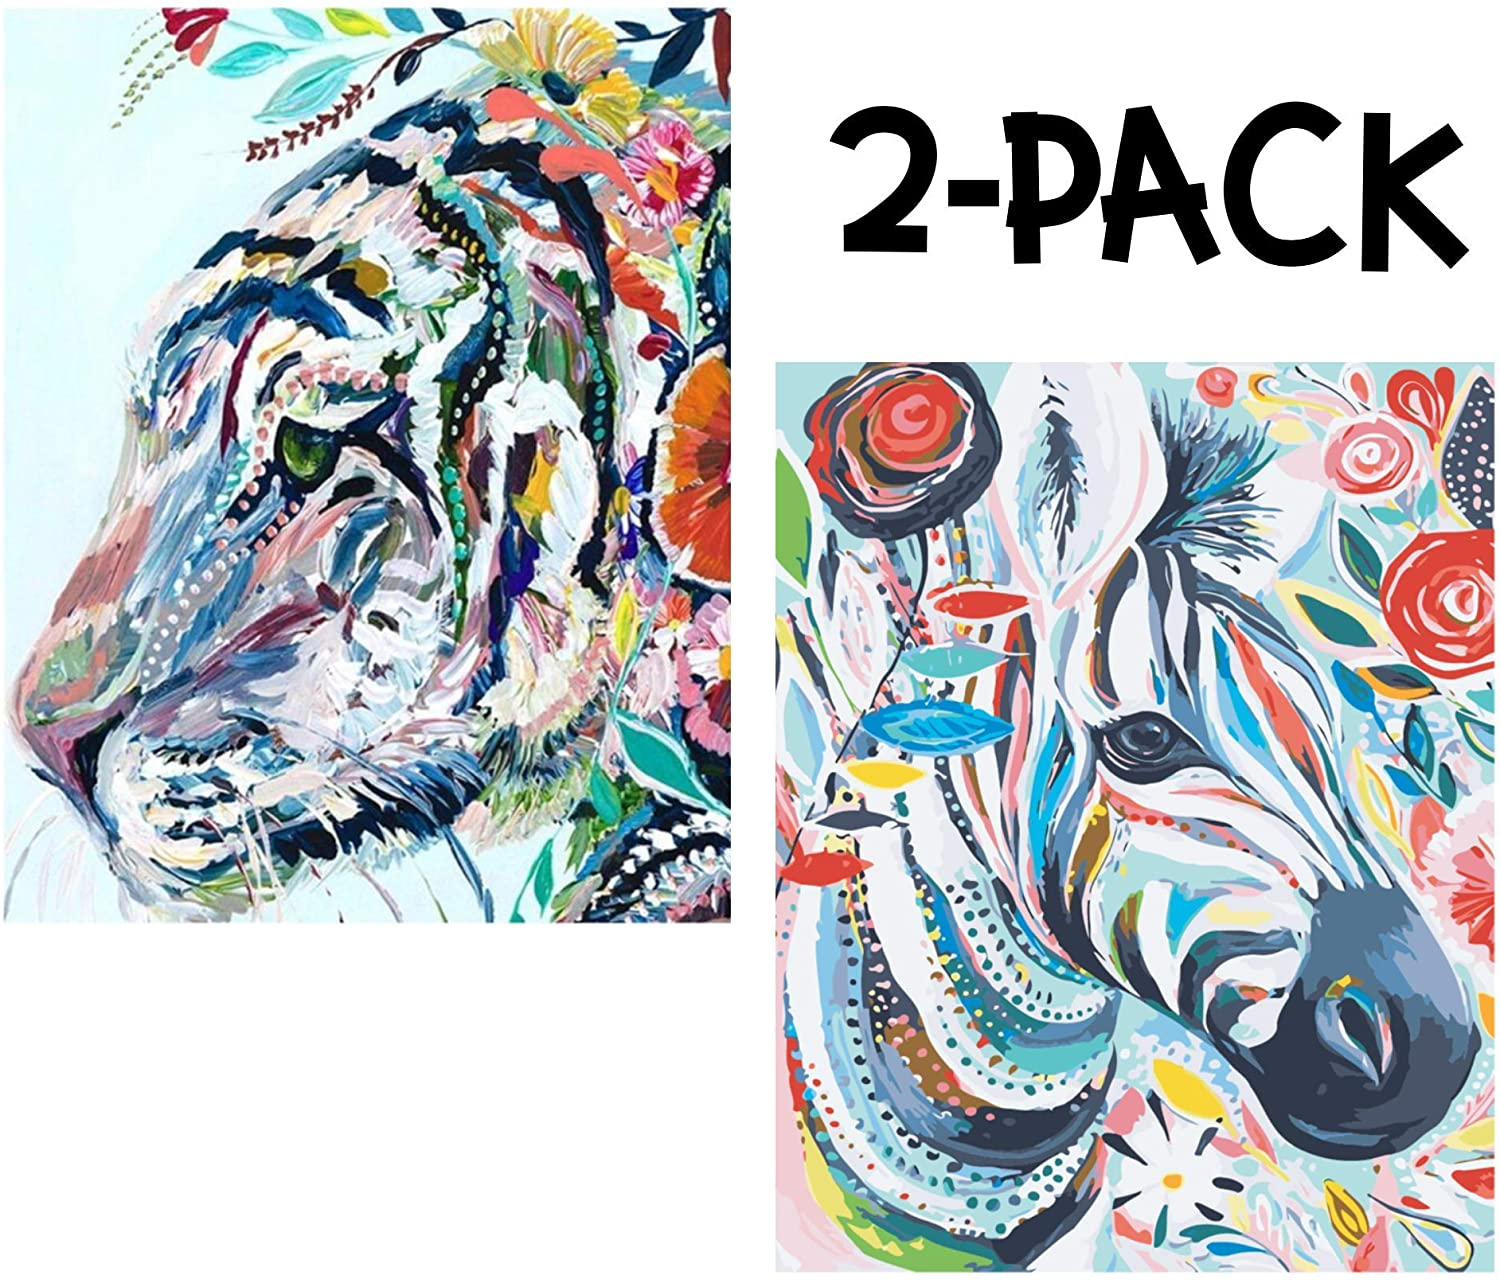 Måla | Premium Paint by Numbers for Adults | Rolled Canvas (No Creases) | 16 x 20 Inch | Acrylic Paint by Number Kit on Canvas, Vibrant Colors | Pastel Tiger & Zebra